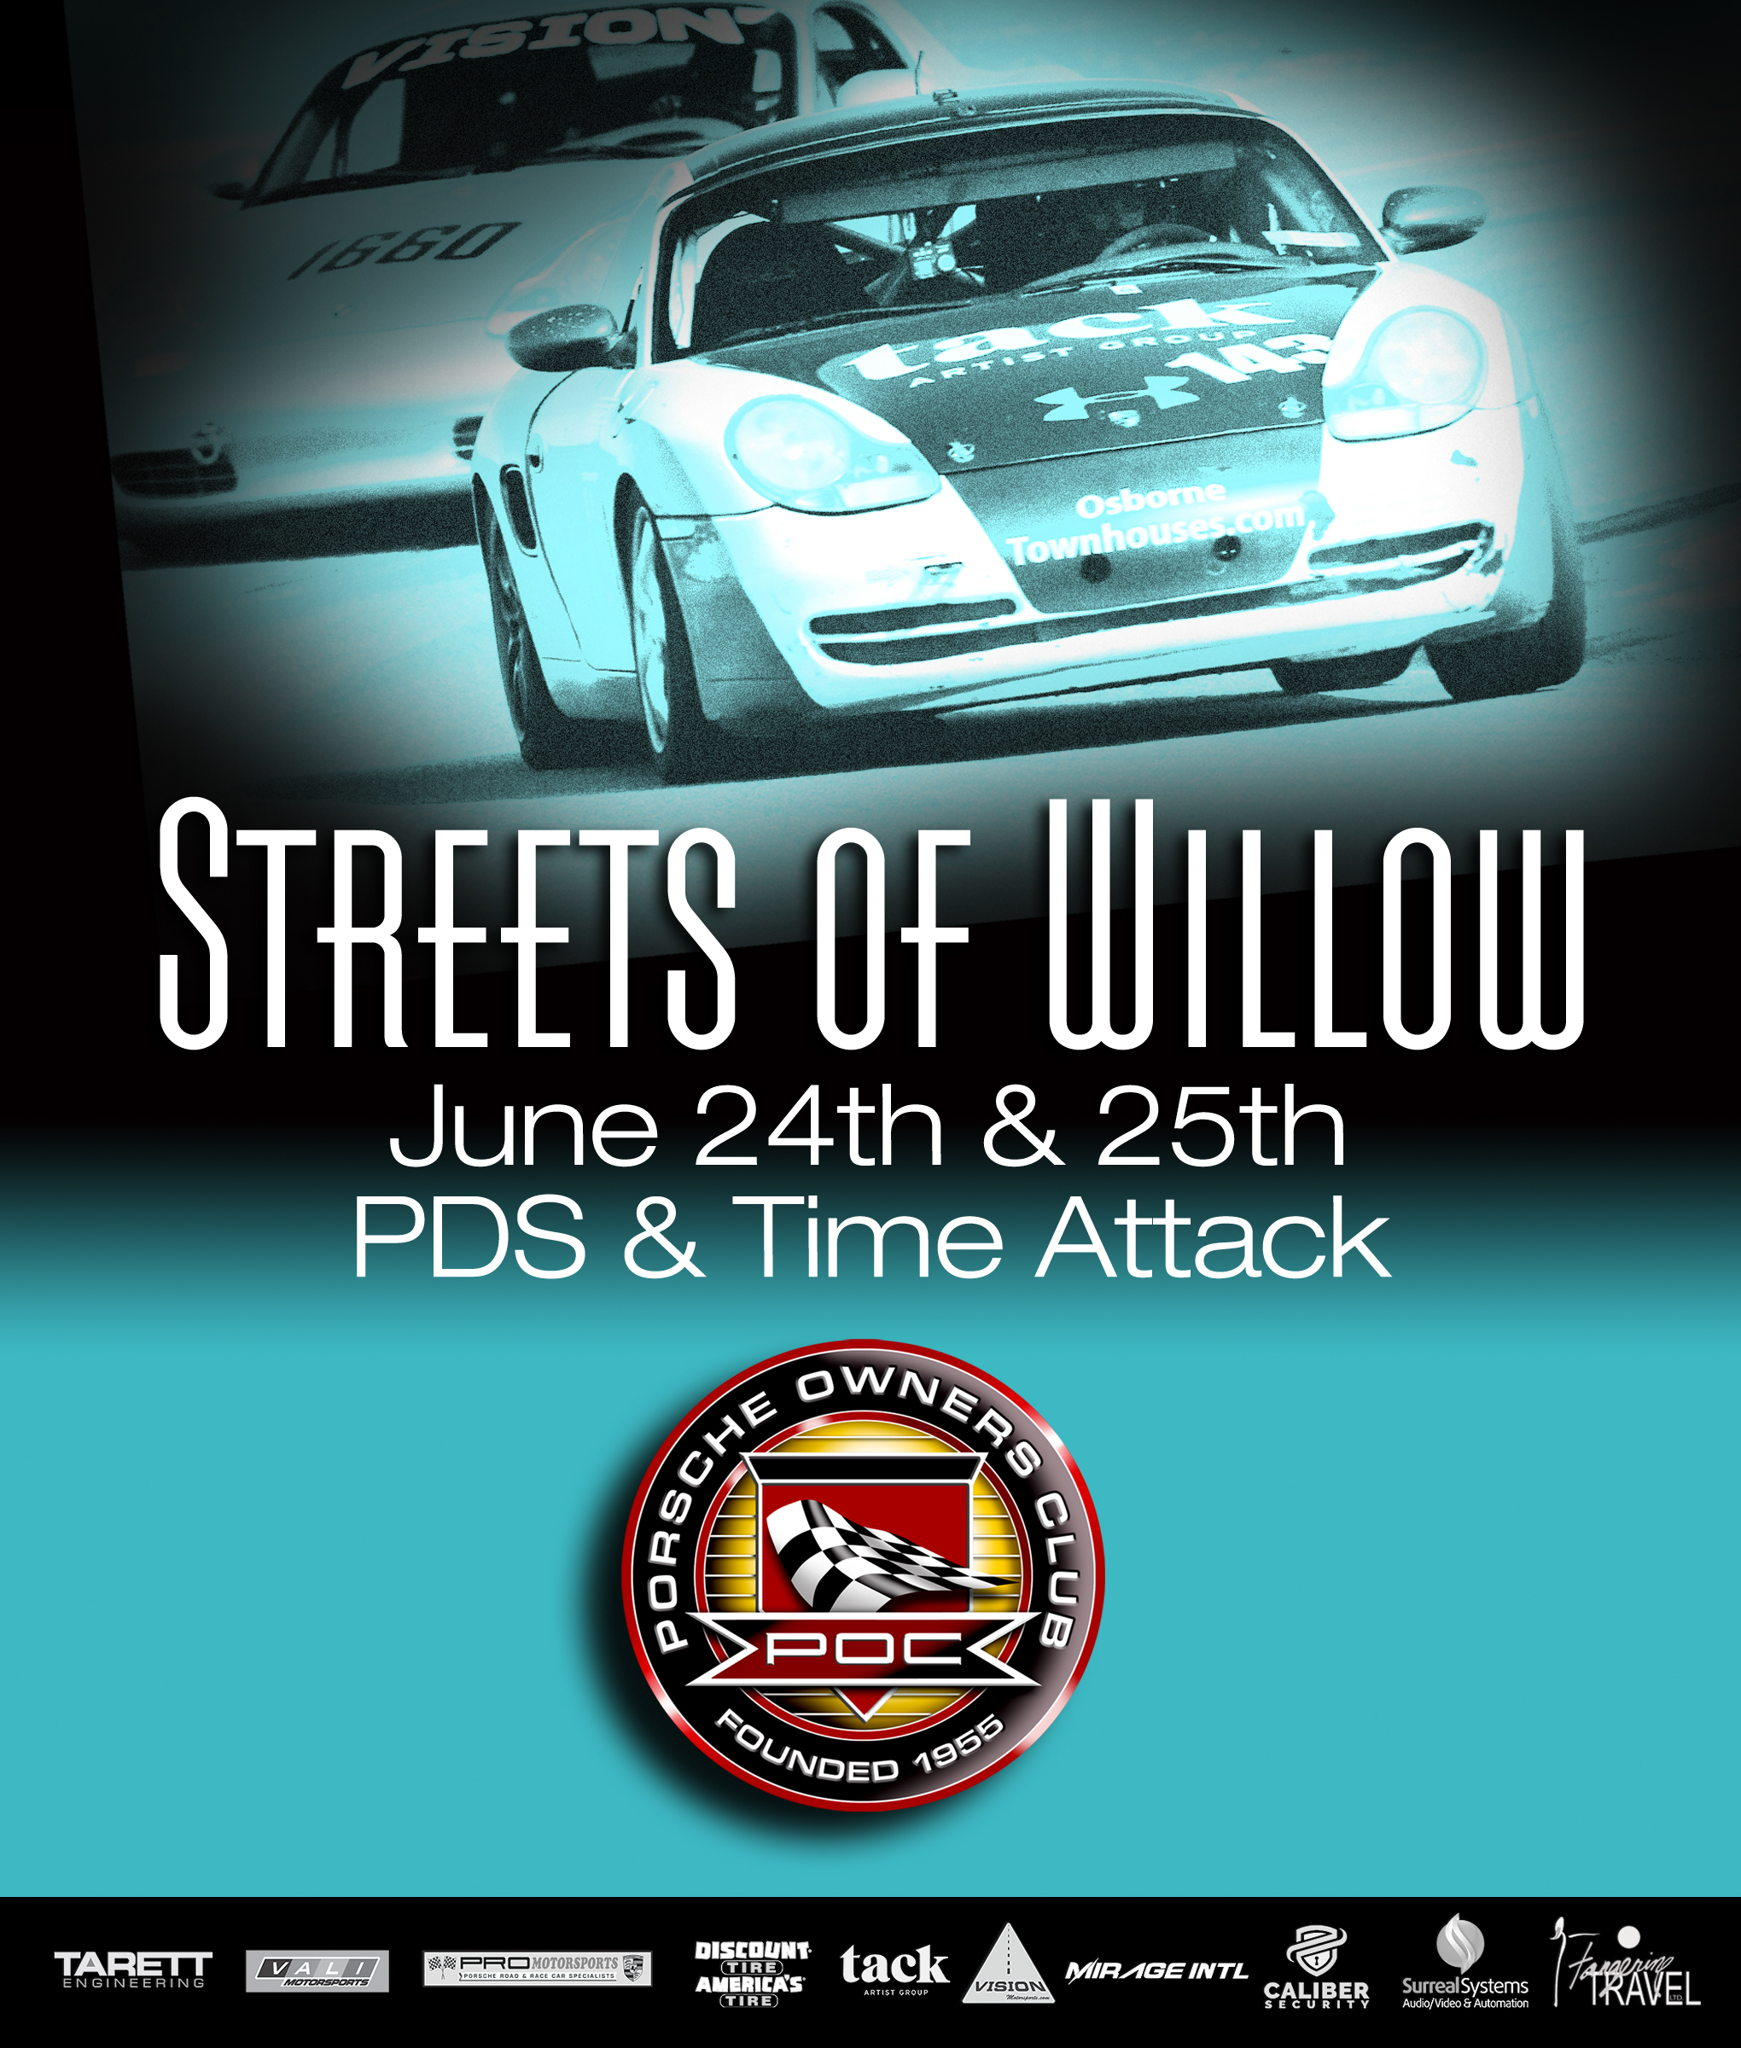 Porsche Owners Club Streets of Willow June 24 25 info on Jun 24